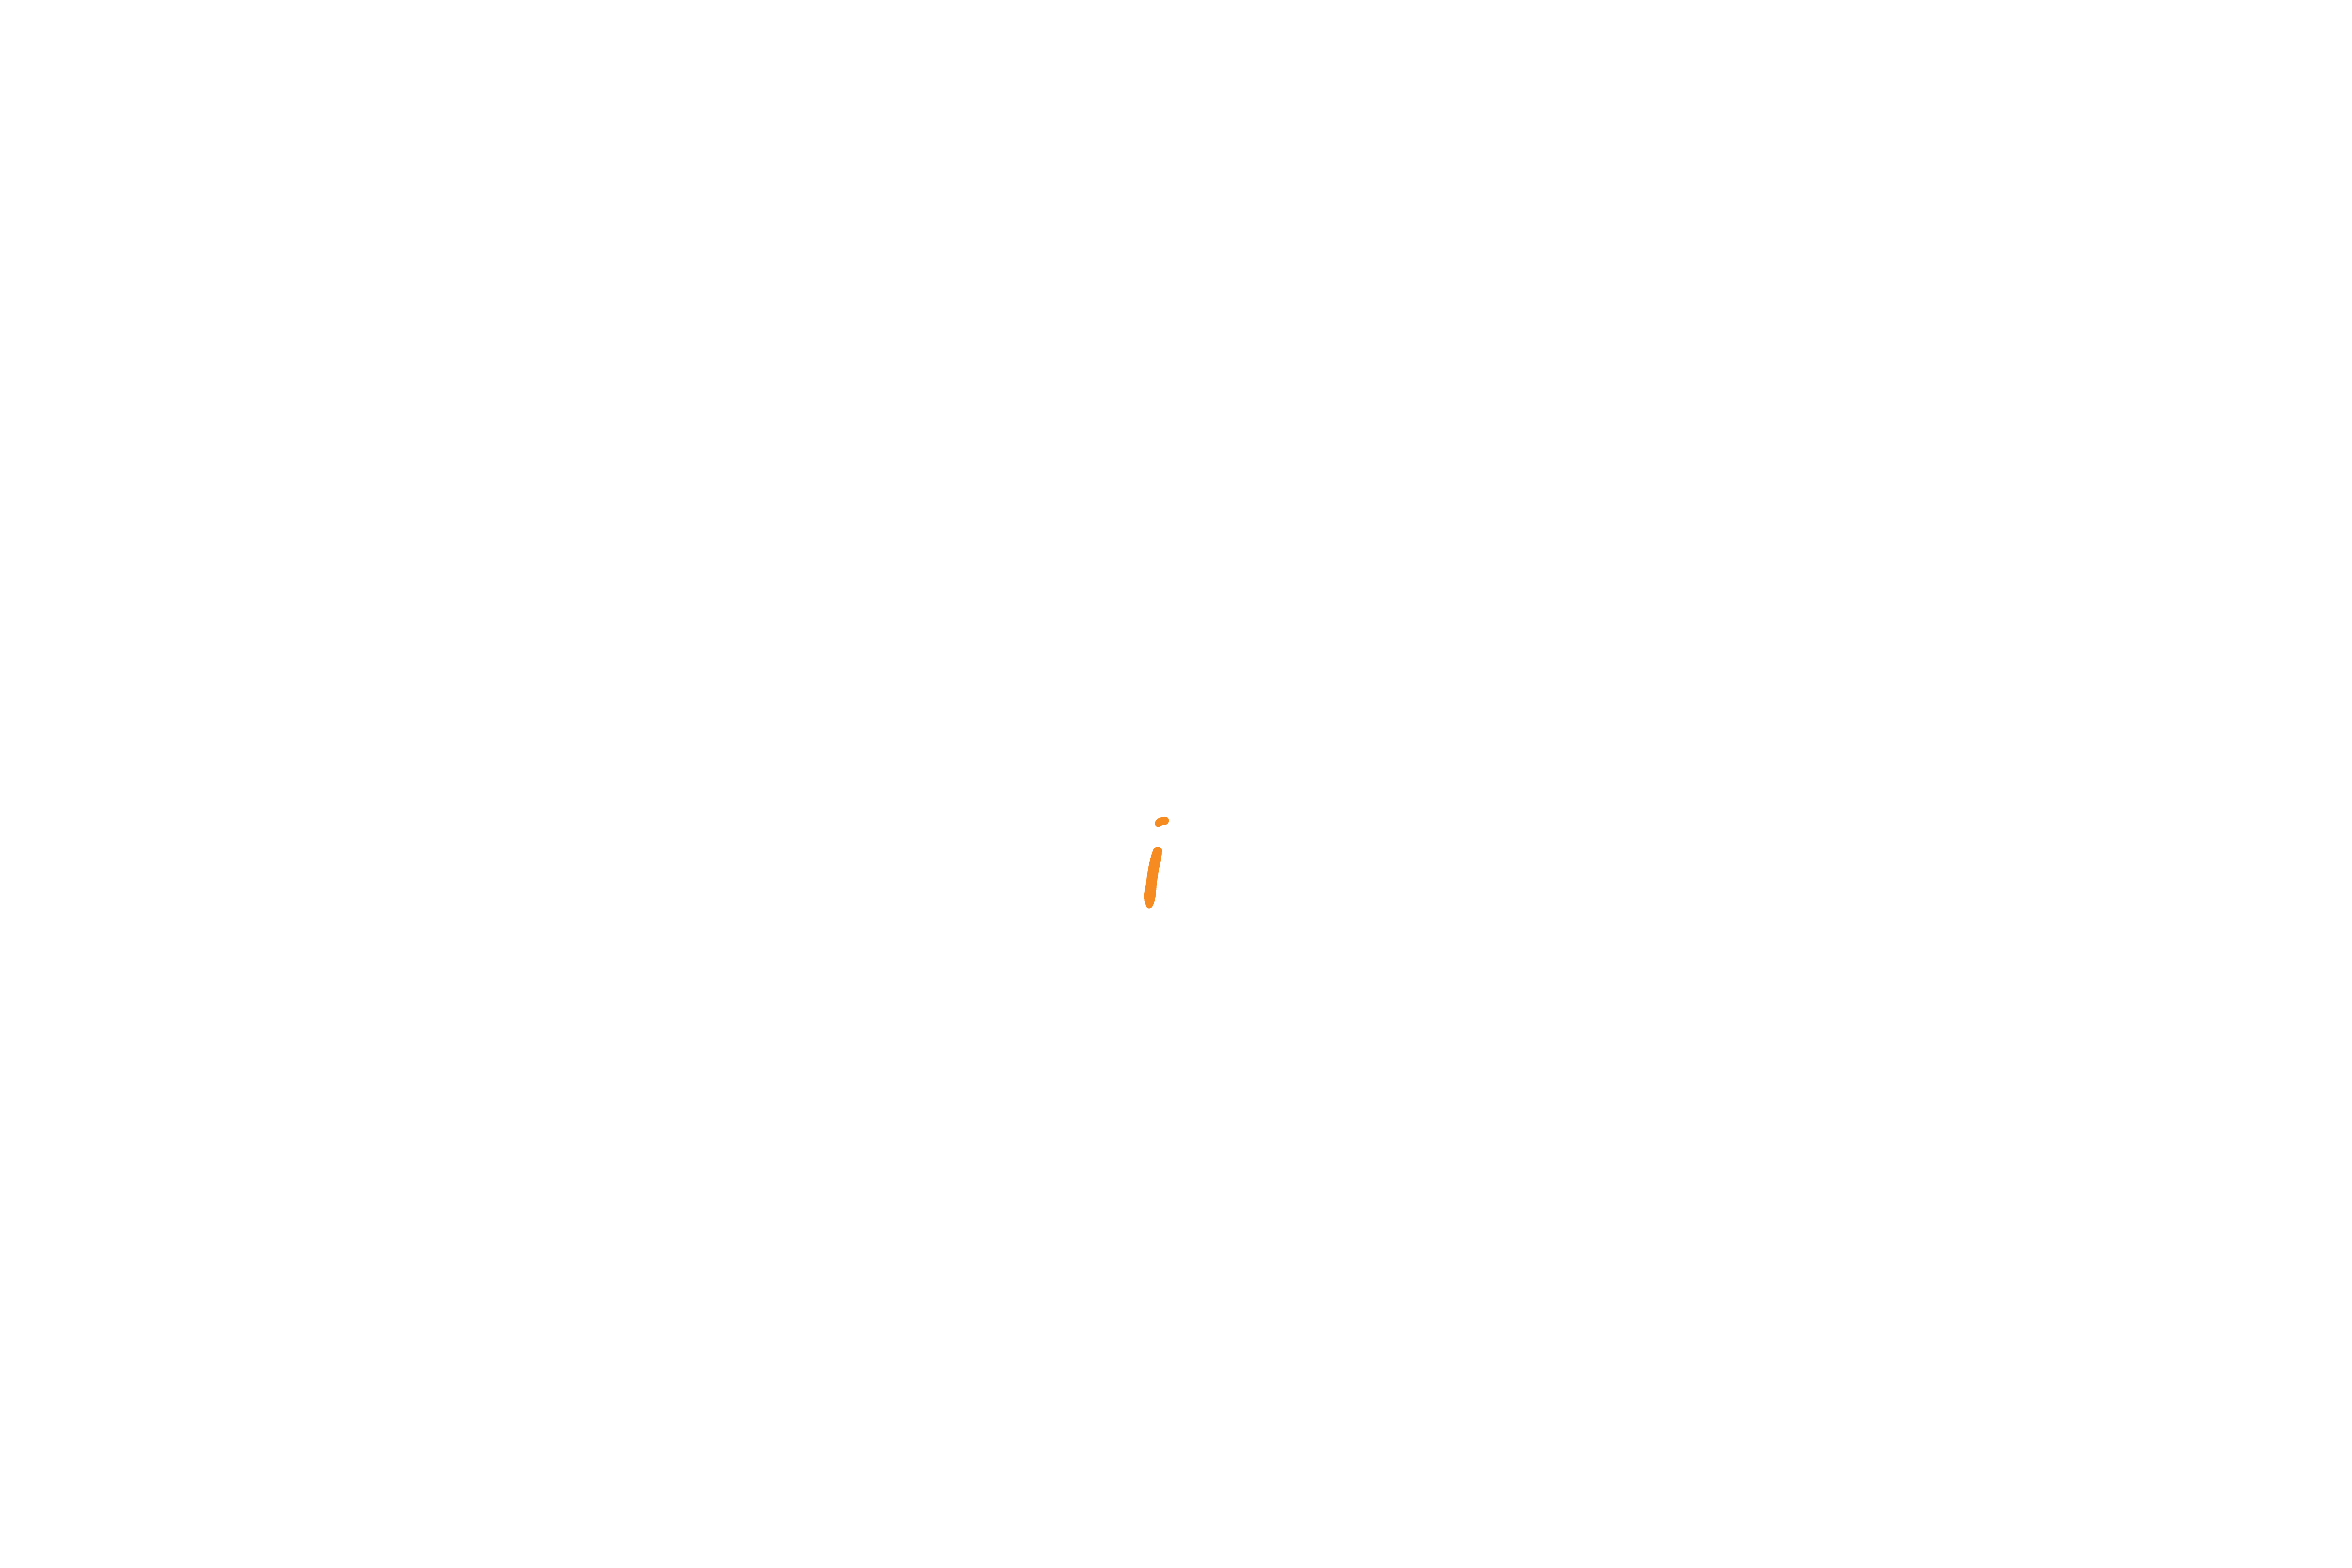 SATYAKI GHOSH PHOTOGRAPHY